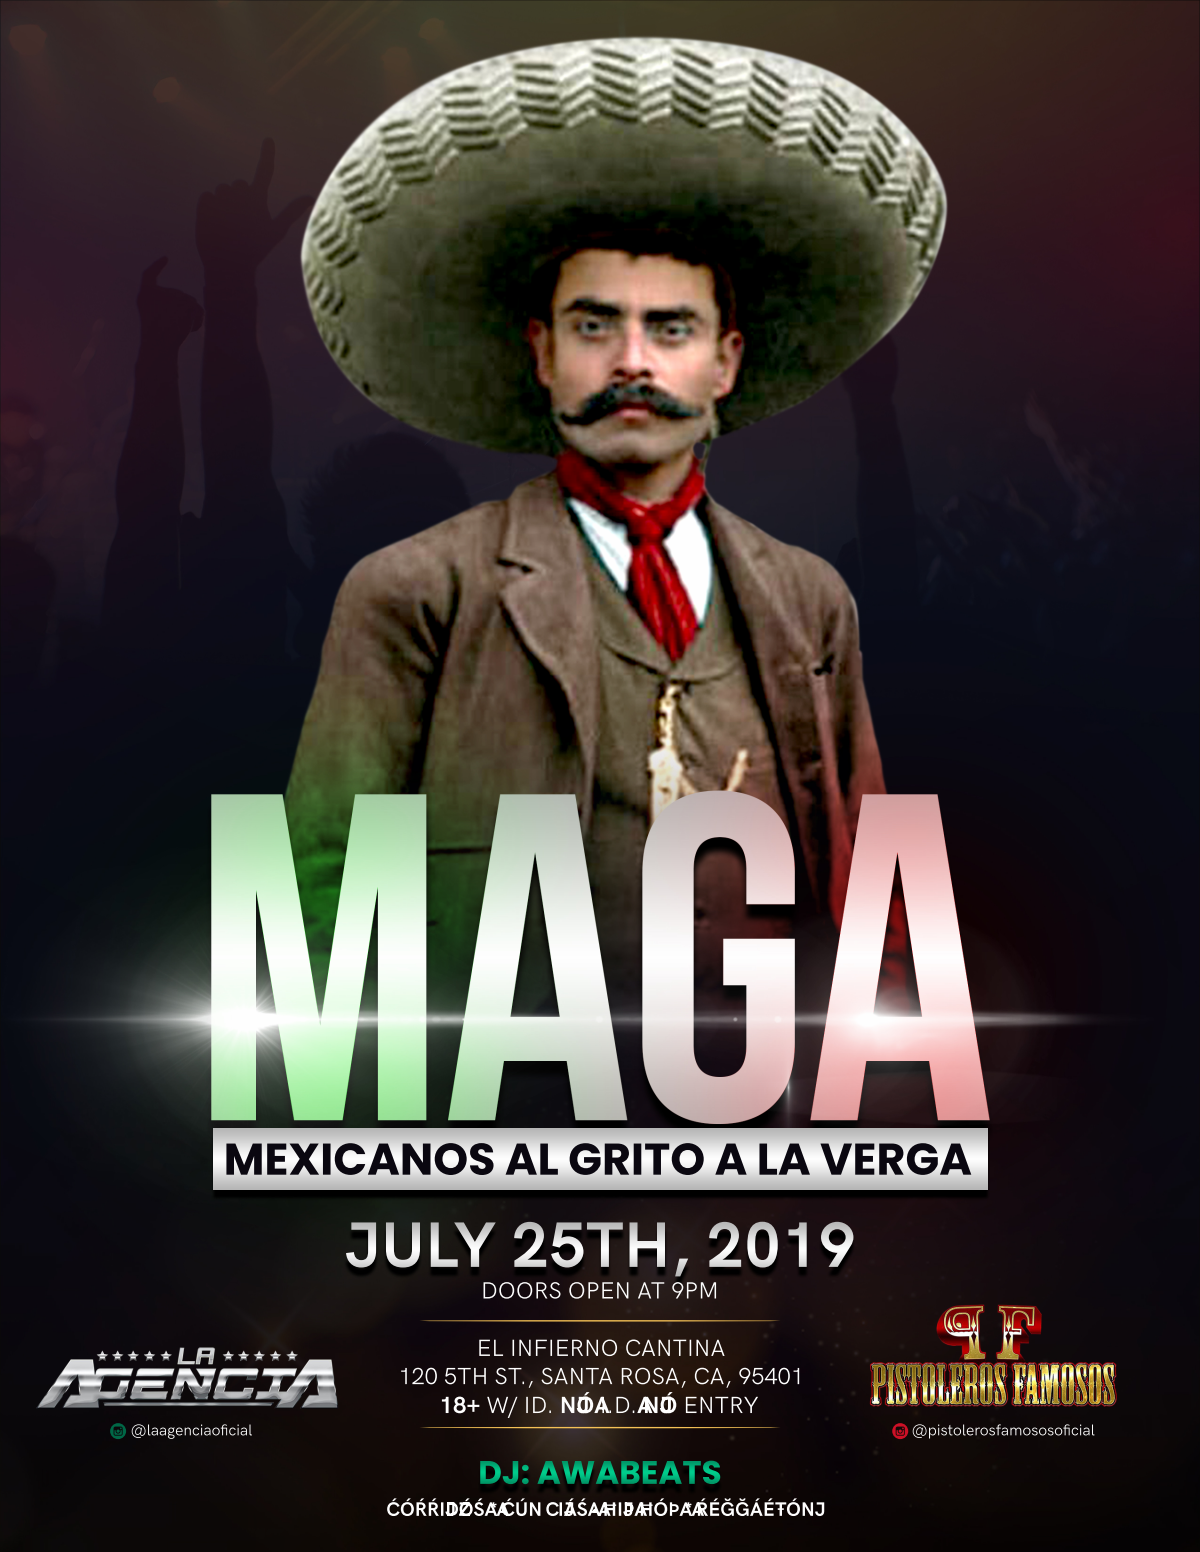 Flyer for Mexican night club event